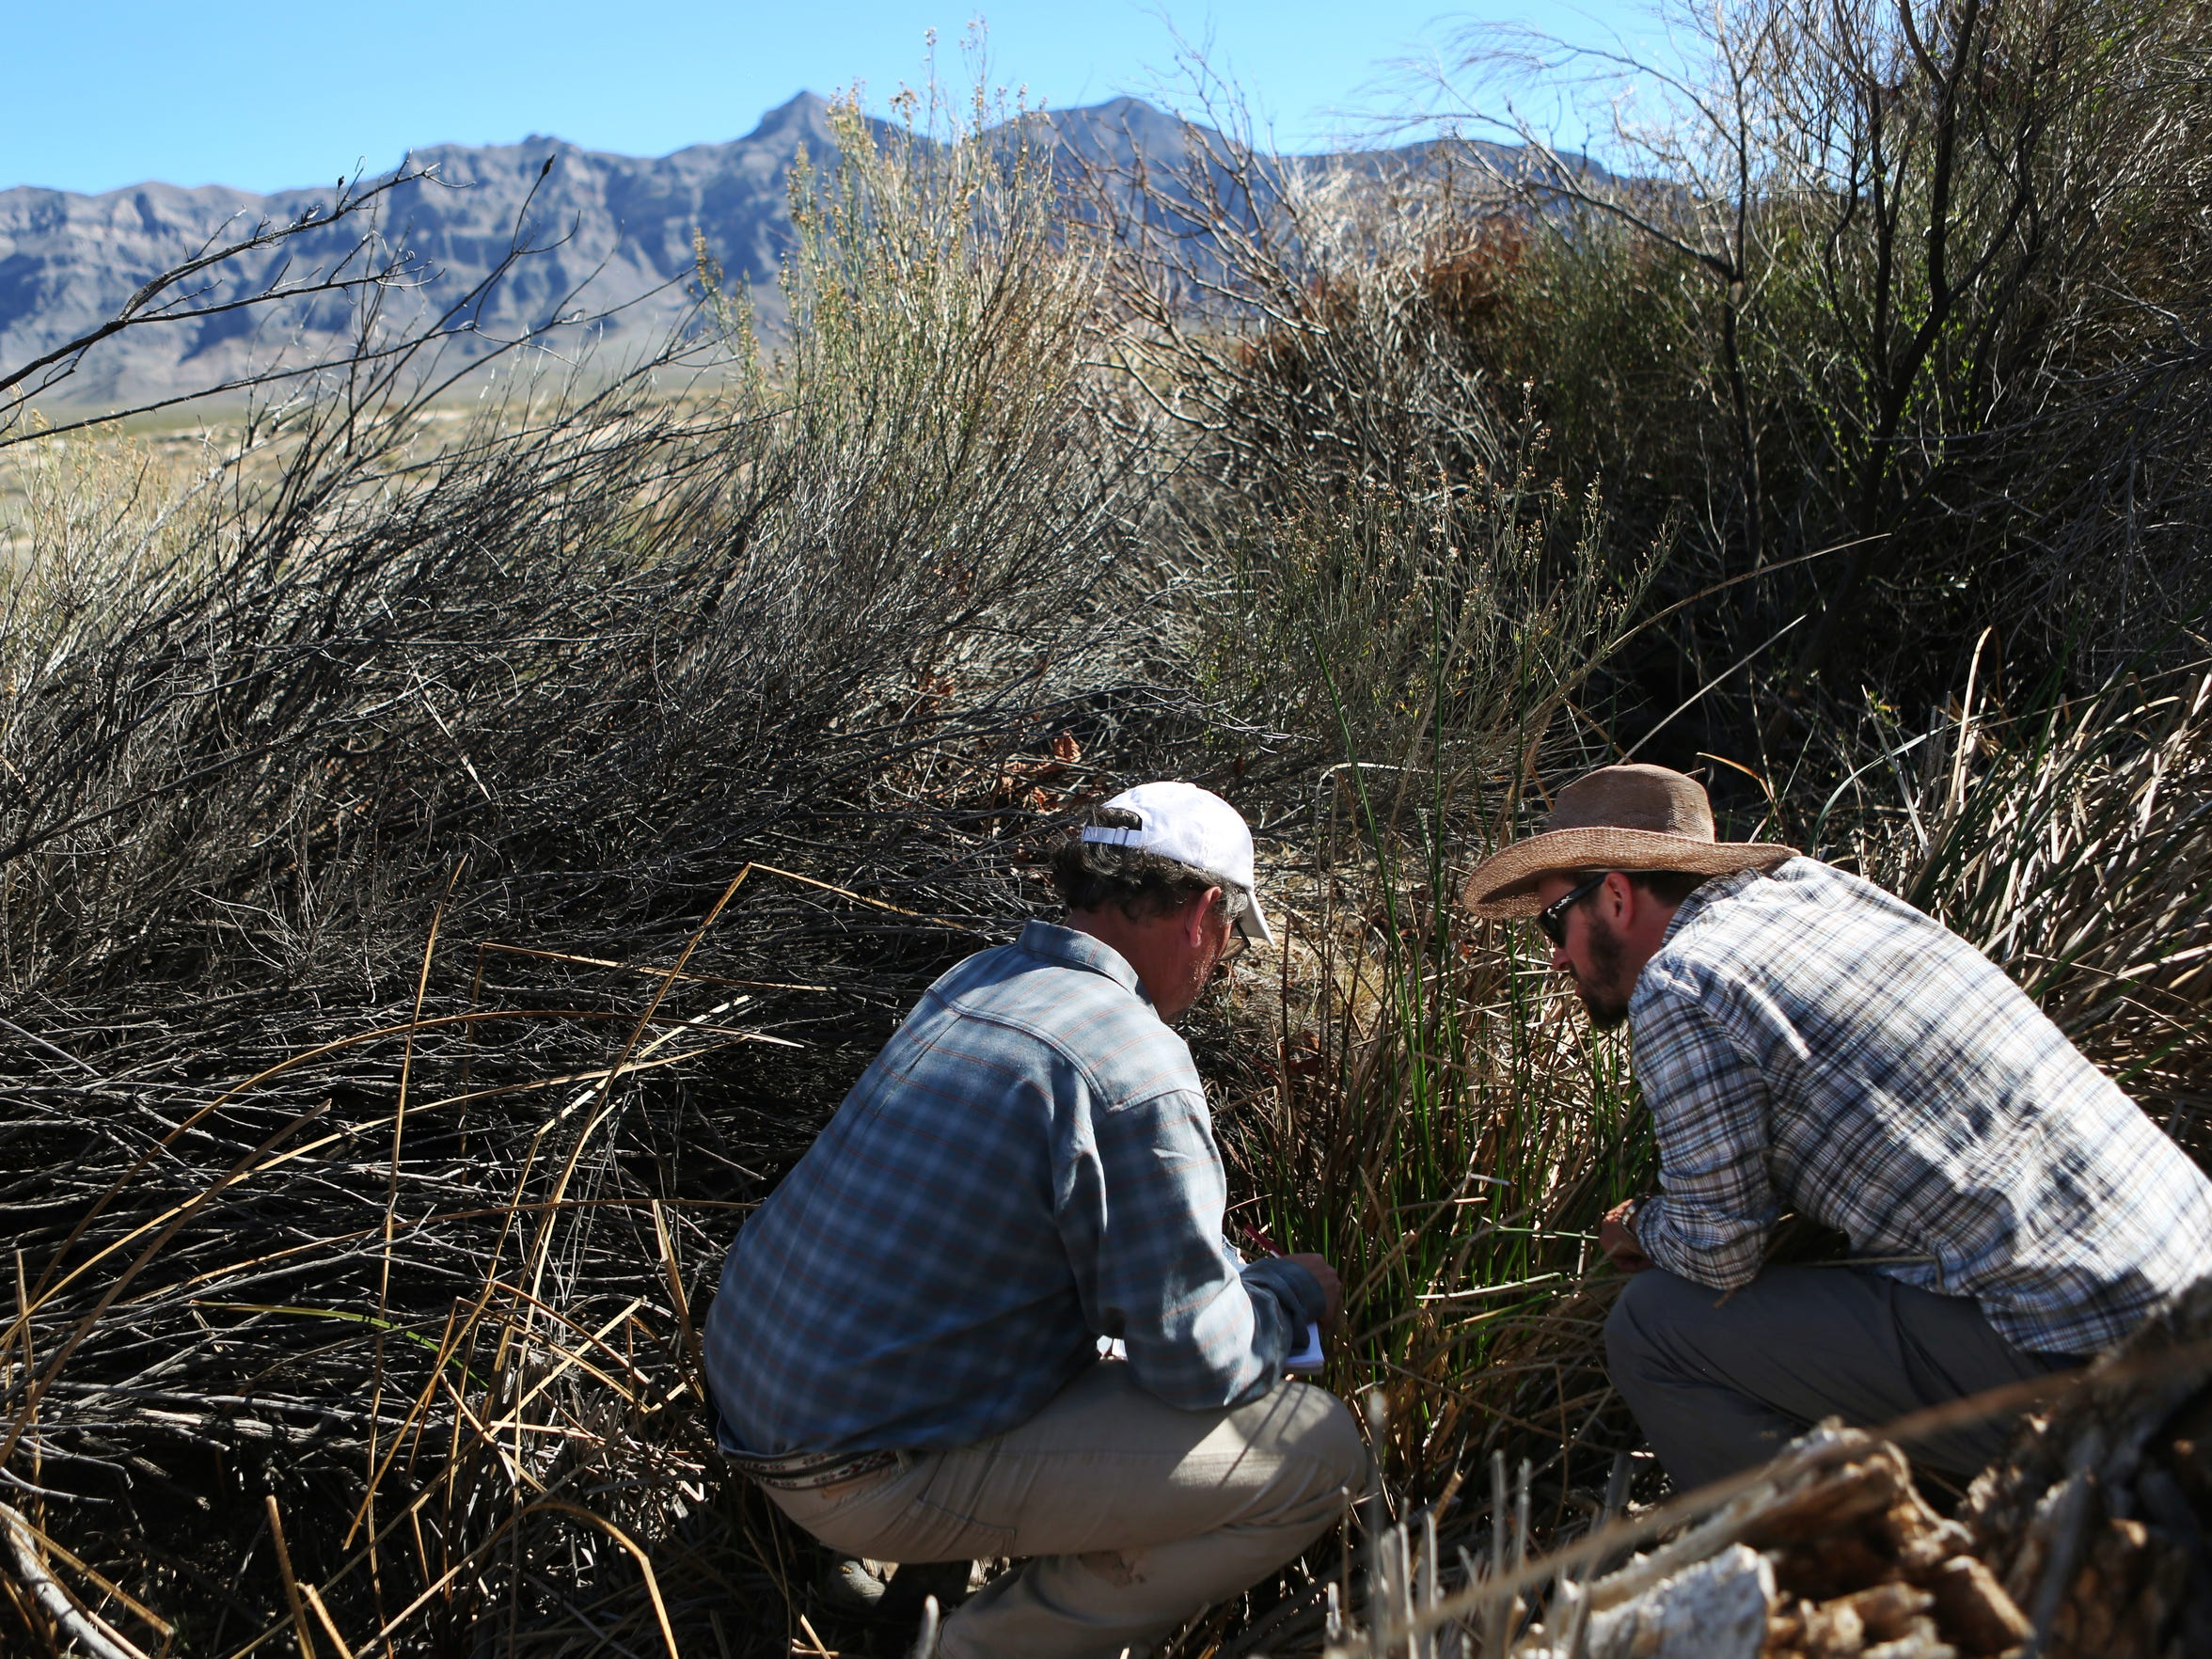 Hydrogeologist Andy Zdon (left) and Amargosa Conservancy Executive Director Patrick Donnelly measure the water flow and collect other data at a spring in the Mojave Desert.